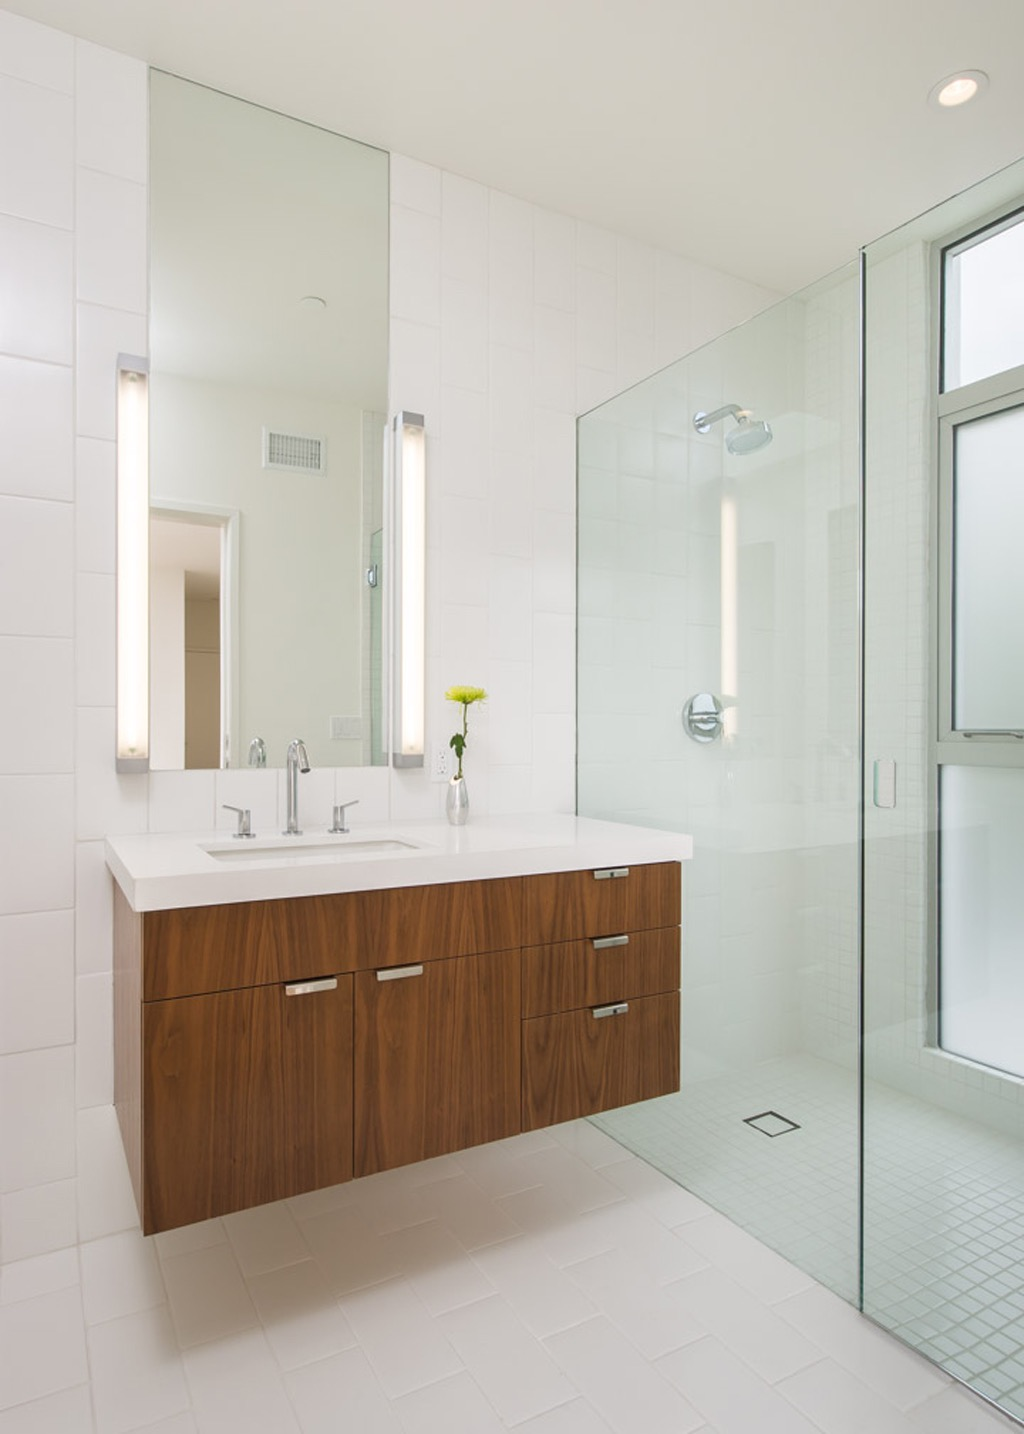 Modern Lighting For Bathroom Floating Vanity With Rectangular Mirror (Image 15 of 19)